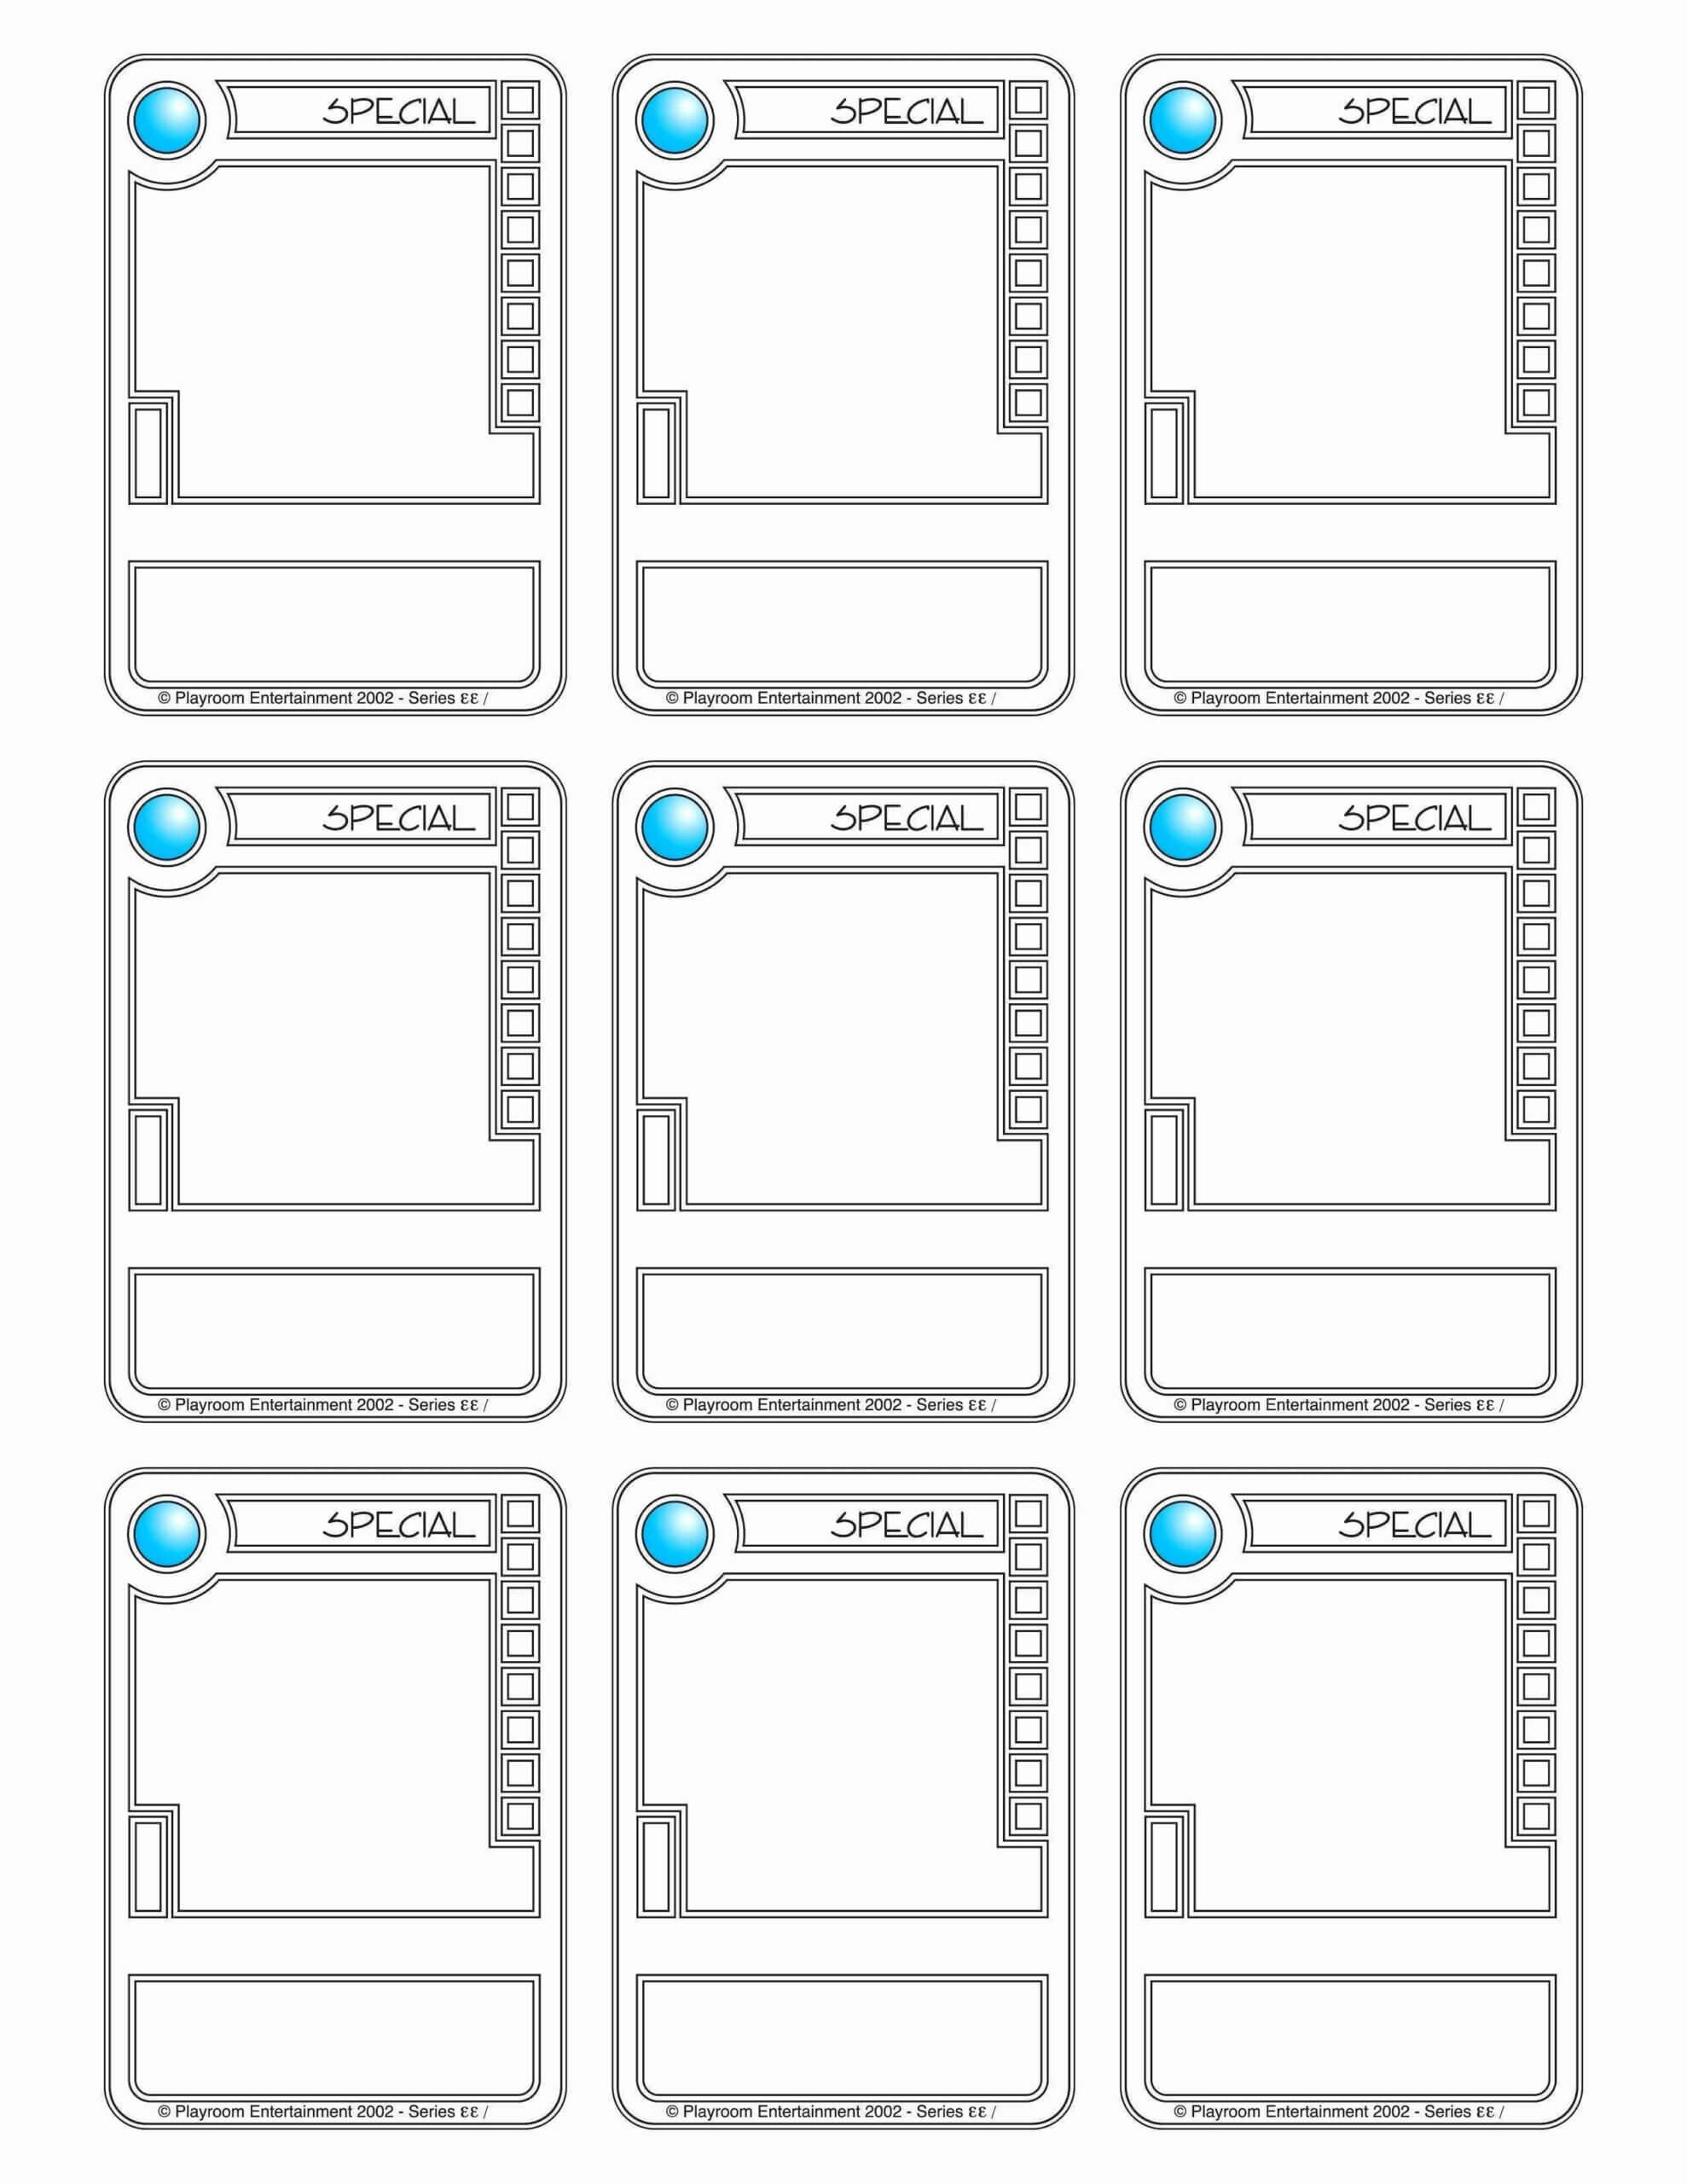 001 Trading Card Maker Free Examples Template For Success In Inside Card Game Template Maker